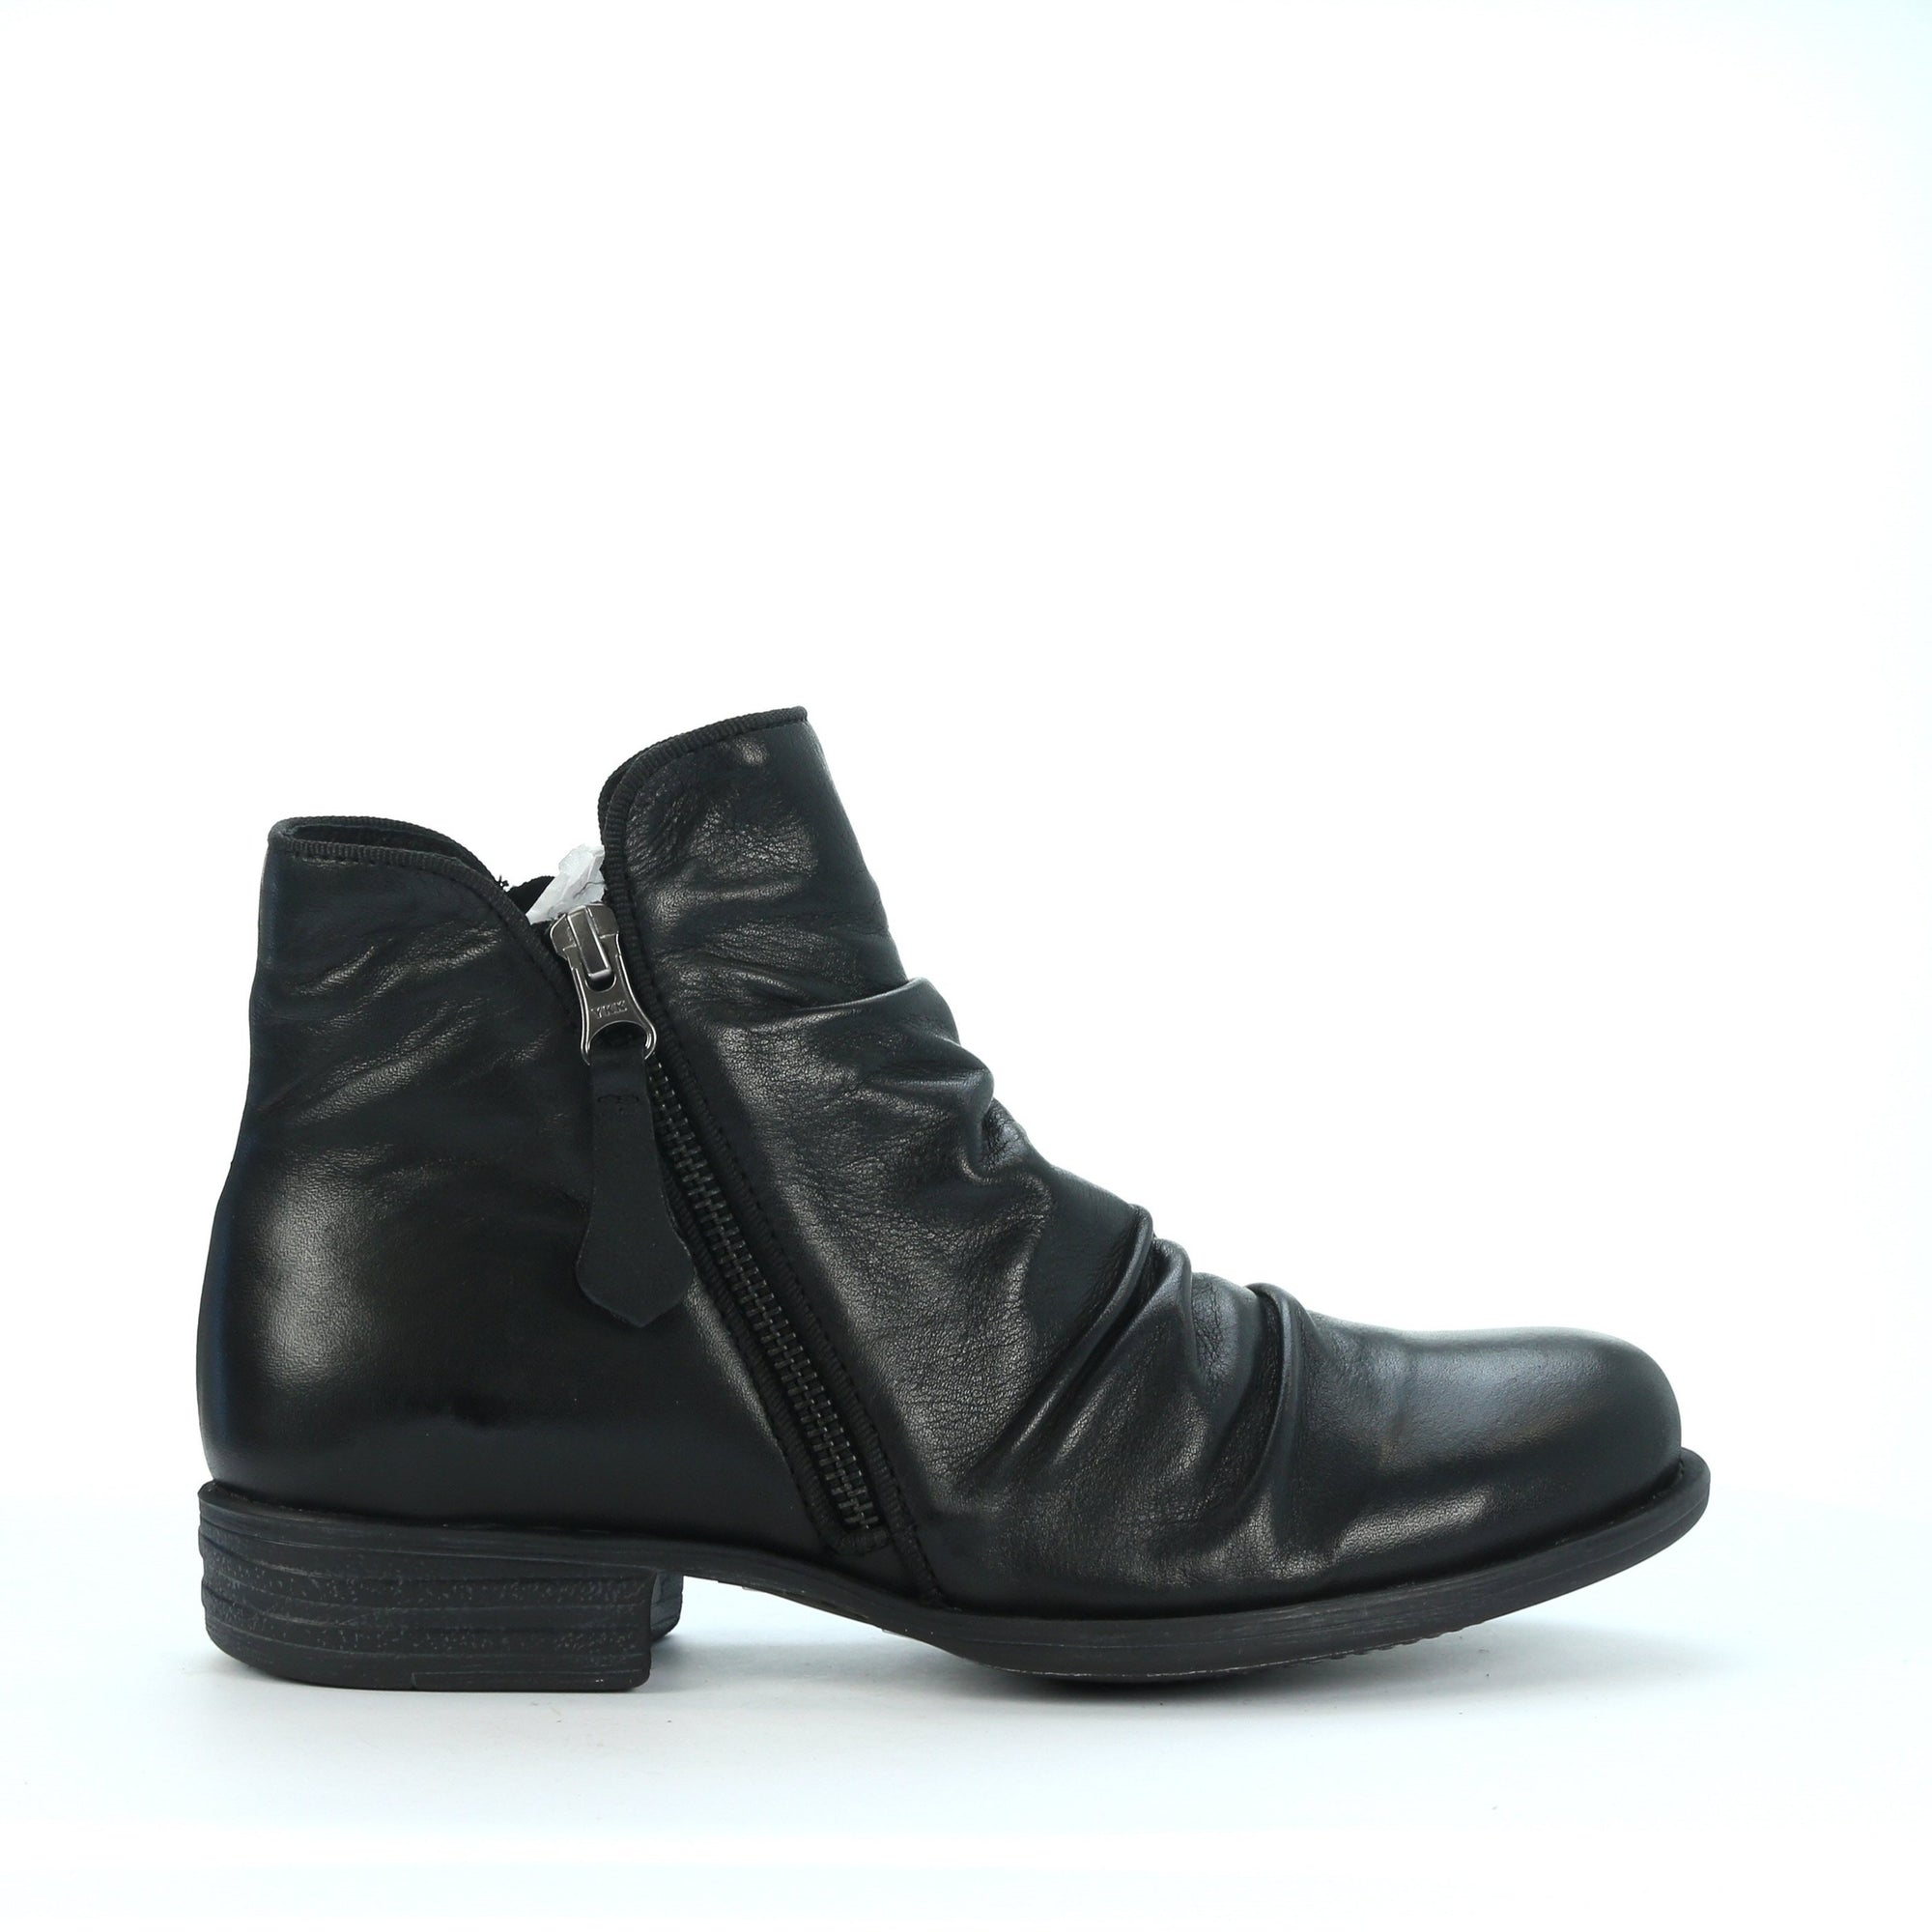 EOS Willet Black Leather